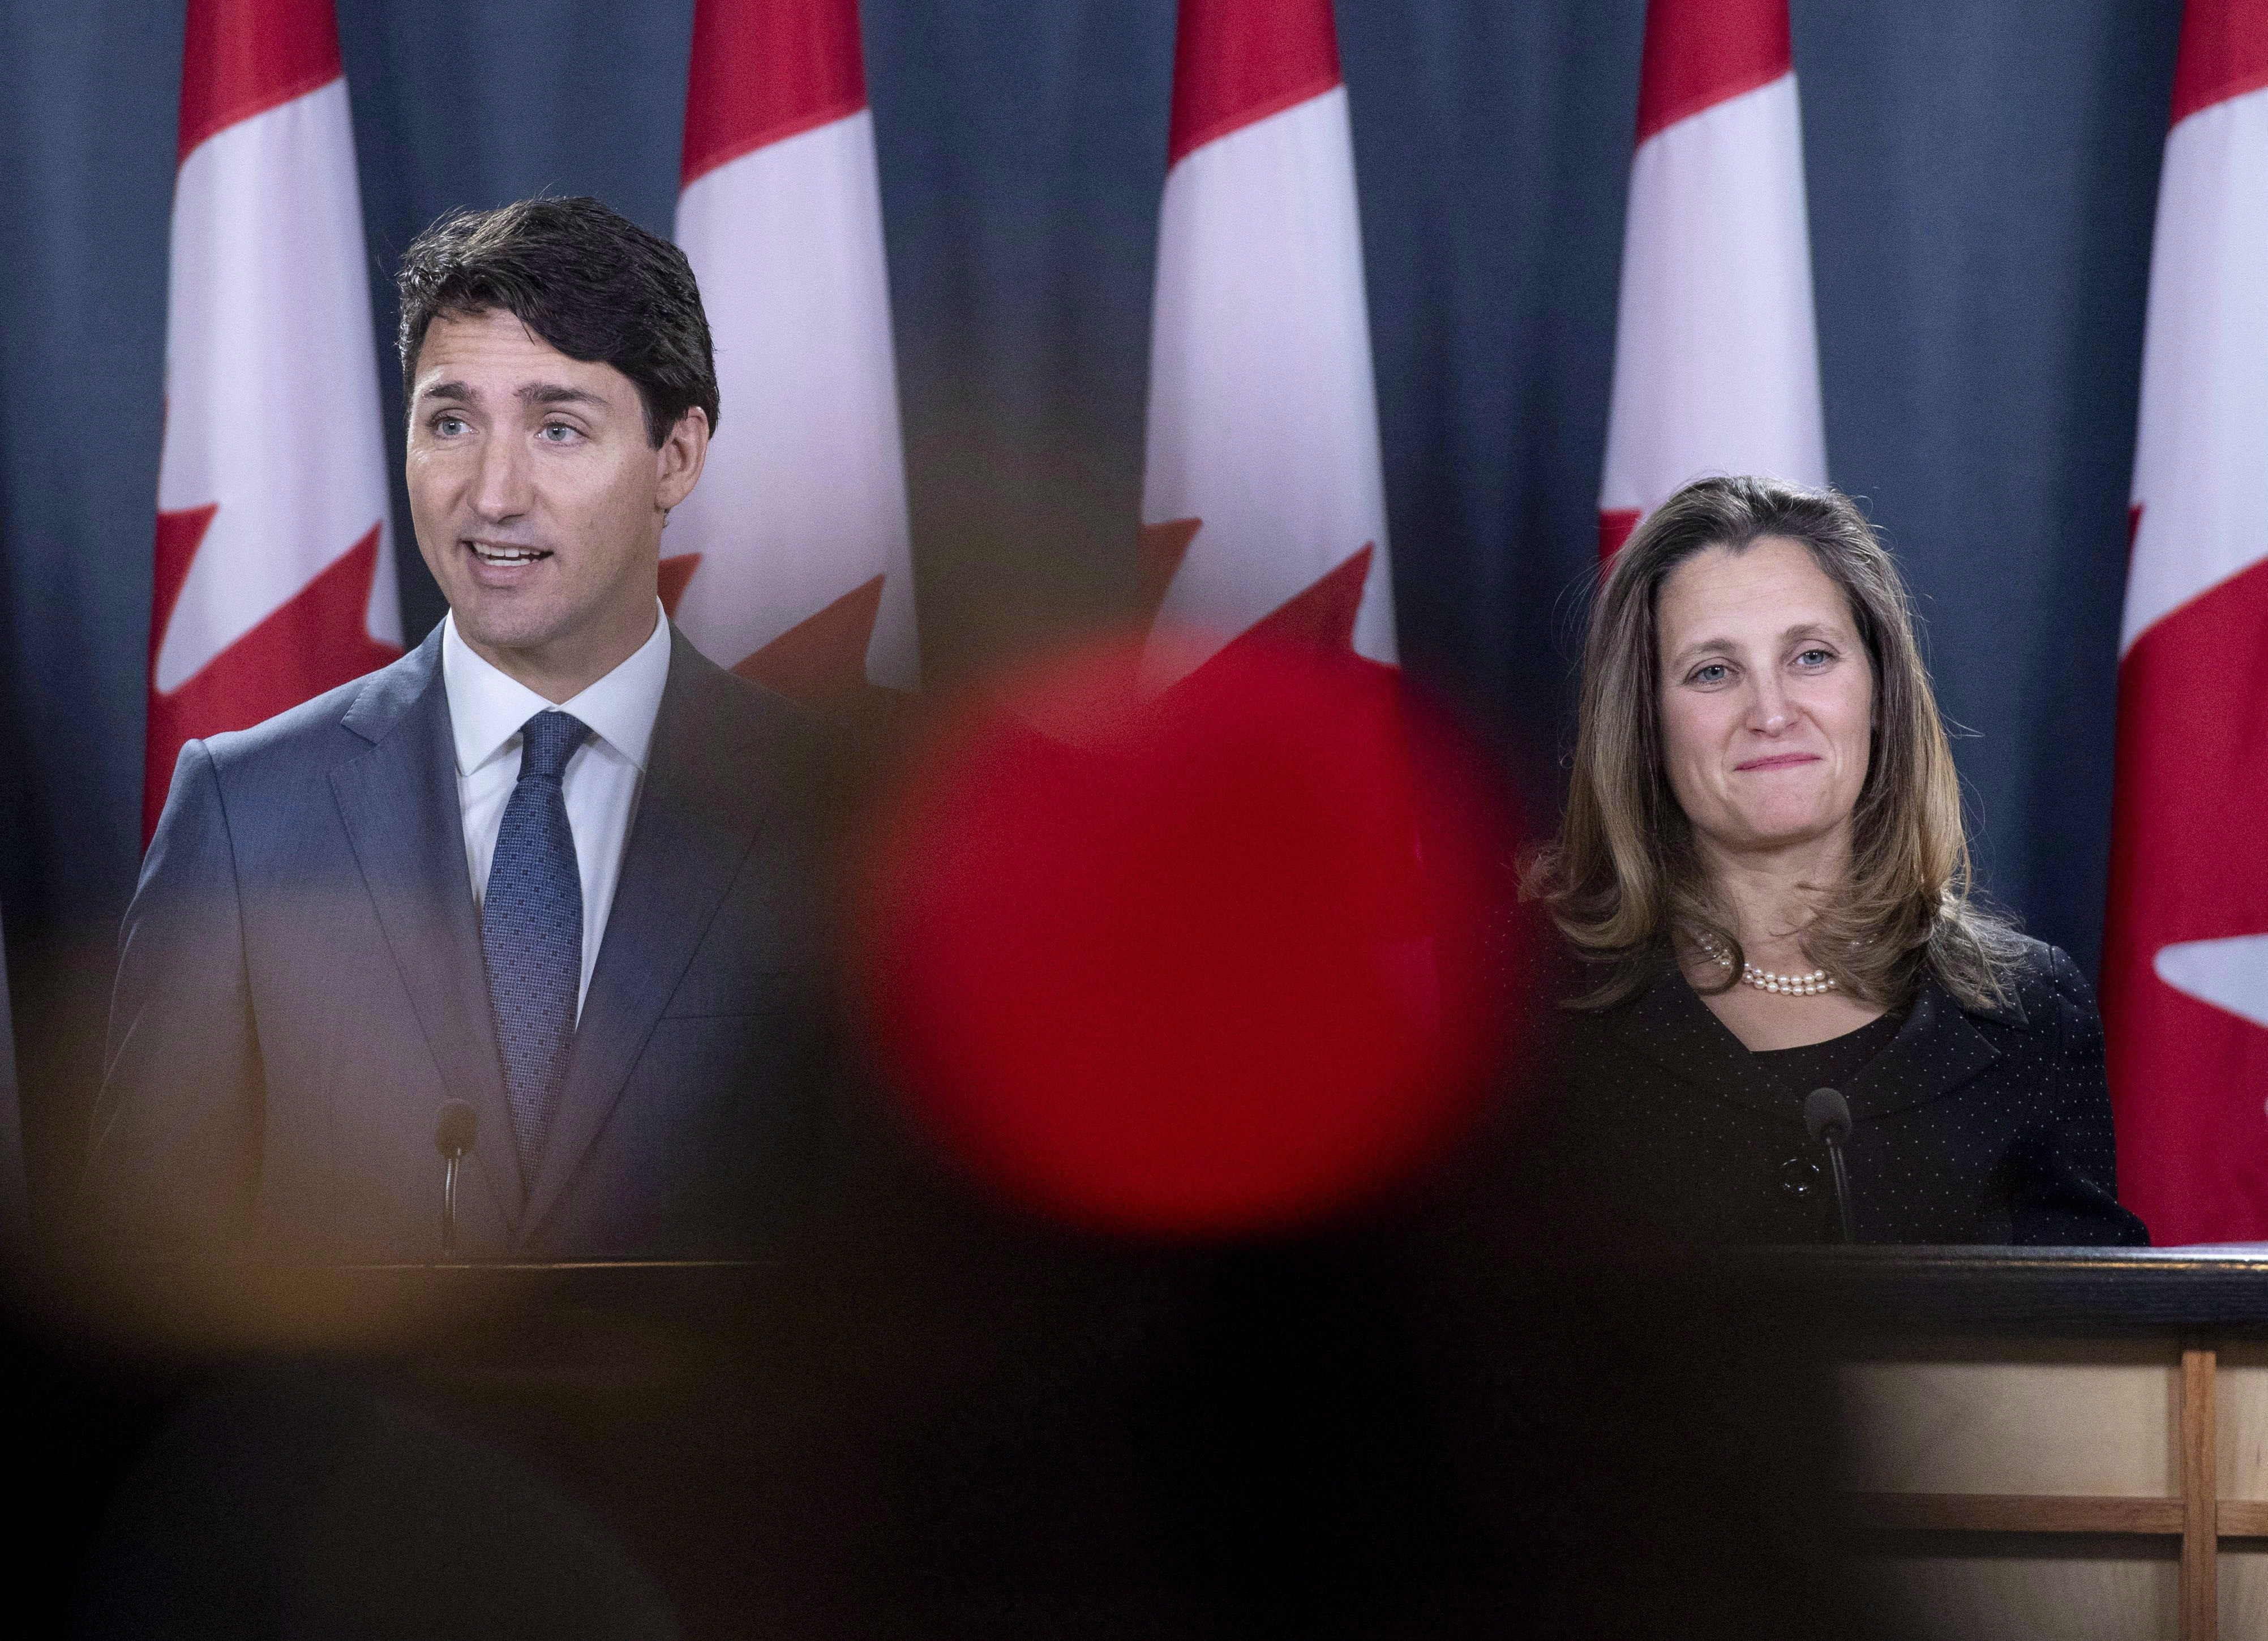 How the new USMCA strengthens Canada in future trade deals